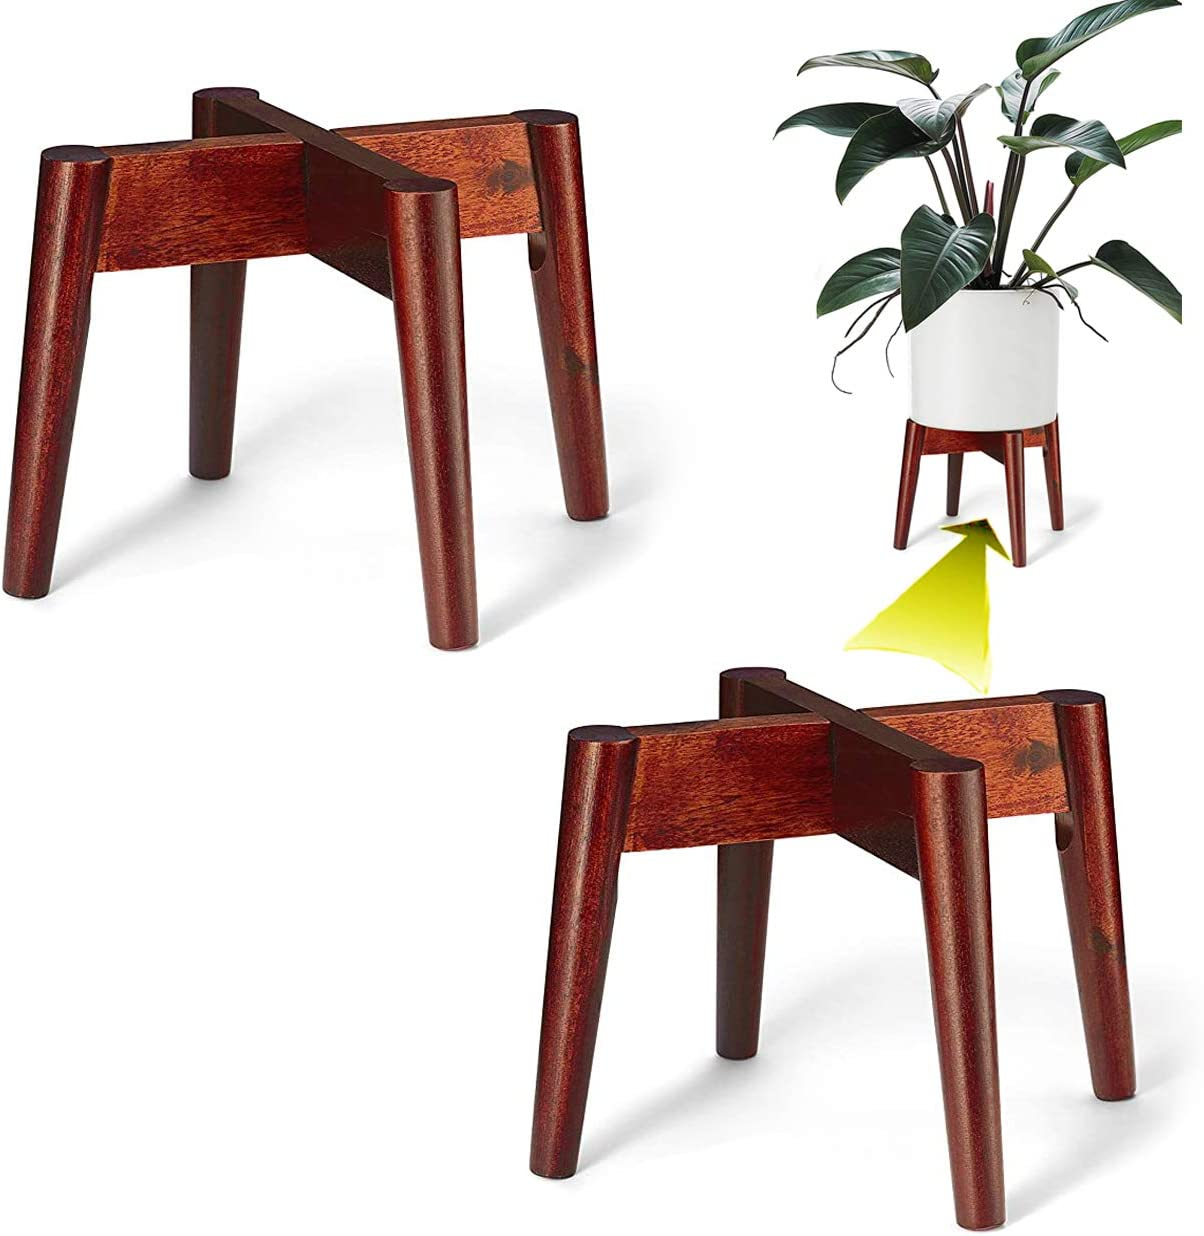 LITADA Plant Stands (Set of 2) Mid Century Modern Plant Stand Indoor (Plant Pot NOT Included) Flower Pot Holder Home Decor, Cherry Color…